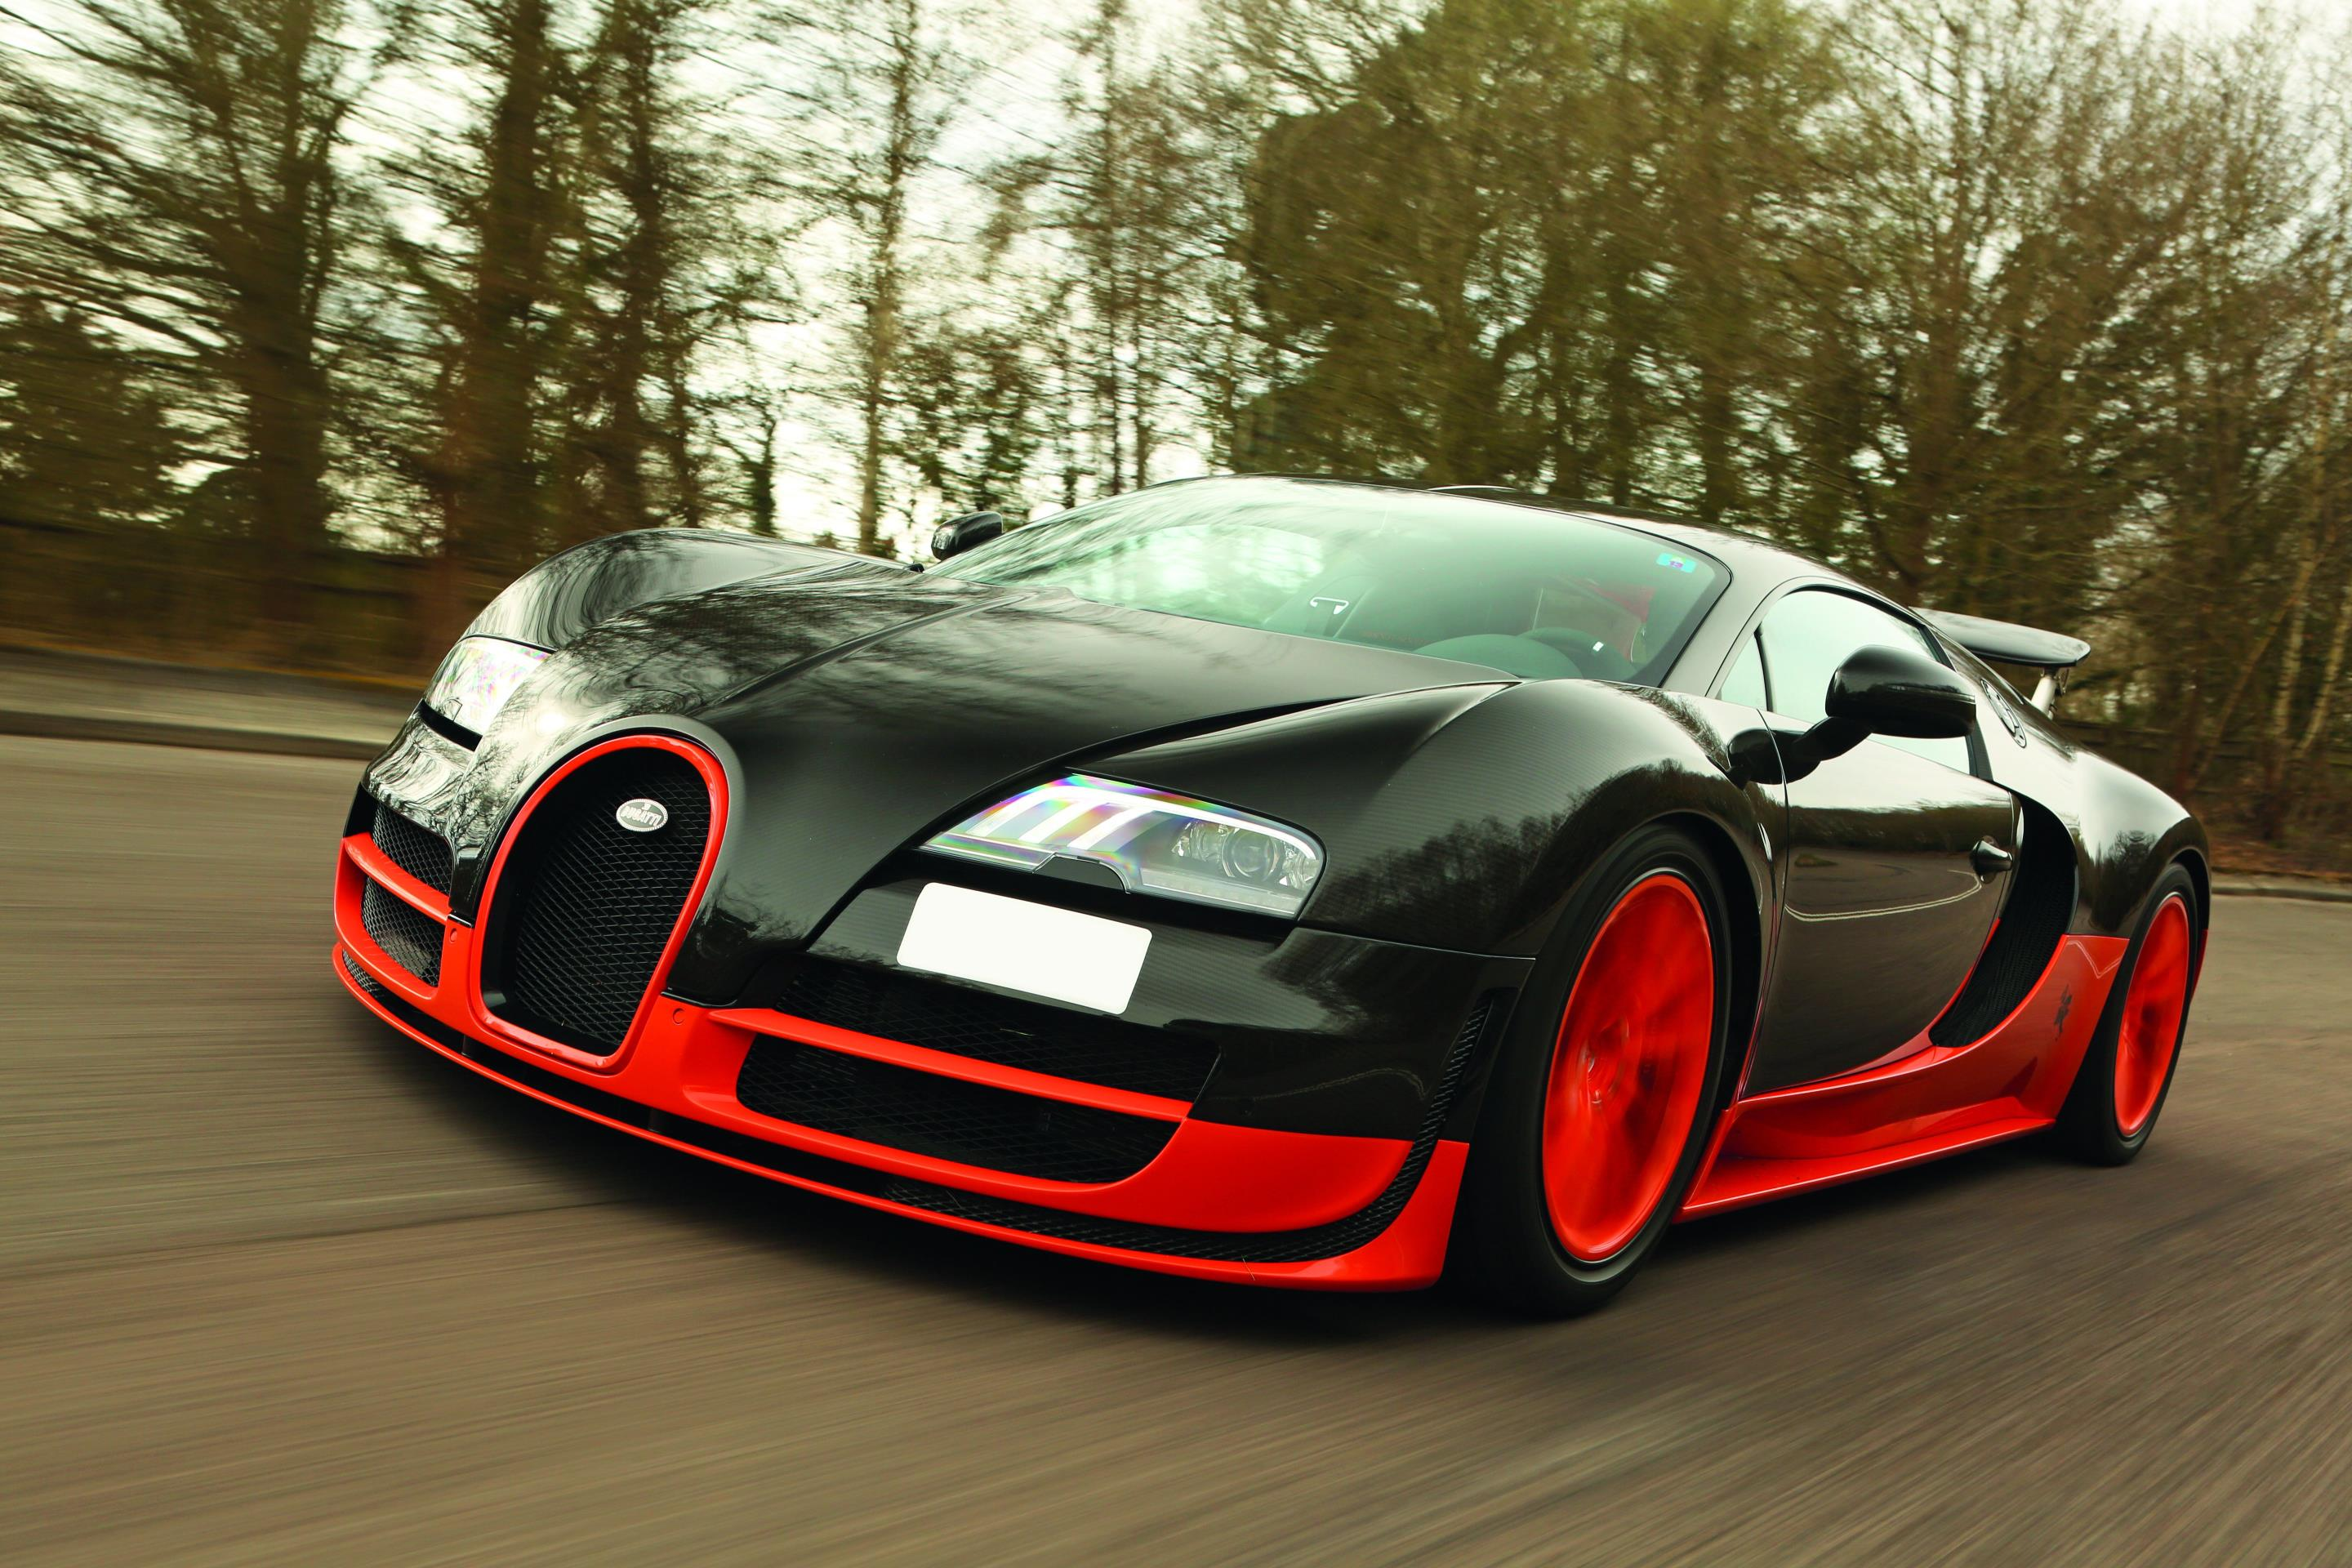 The Veyron remains one of the fastest cars in the world